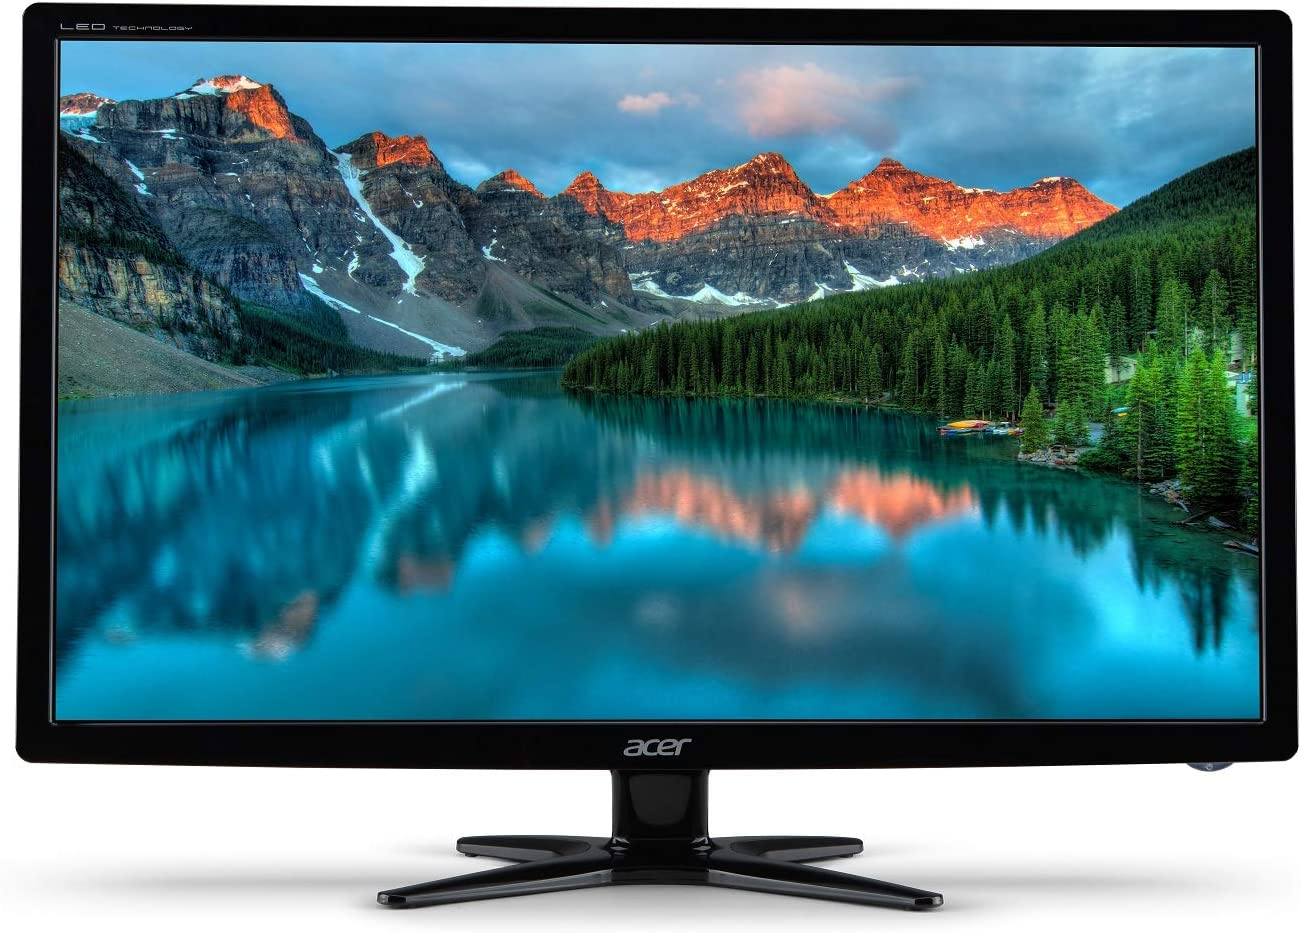 Acer G246HL Abd 24-Inch Screen LED-Lit Monitor,Black